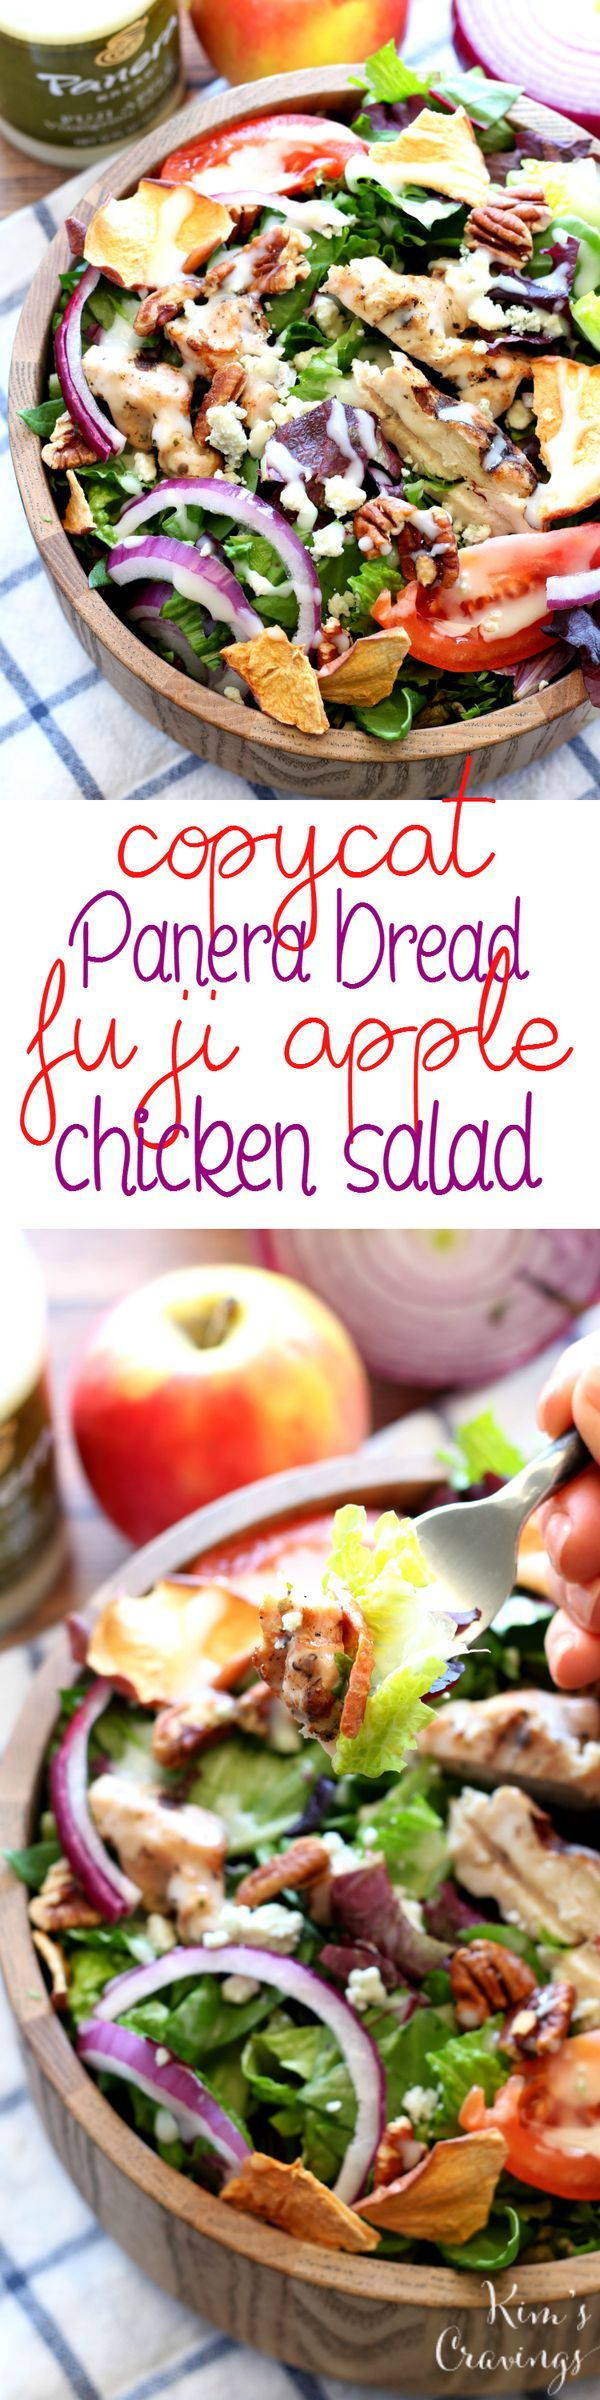 Copycat Panera Bread Fuji Apple Chicken Salad - a fresh flavorful salad that tastes even more delicious than the original! (Apple Recipes Dinner)